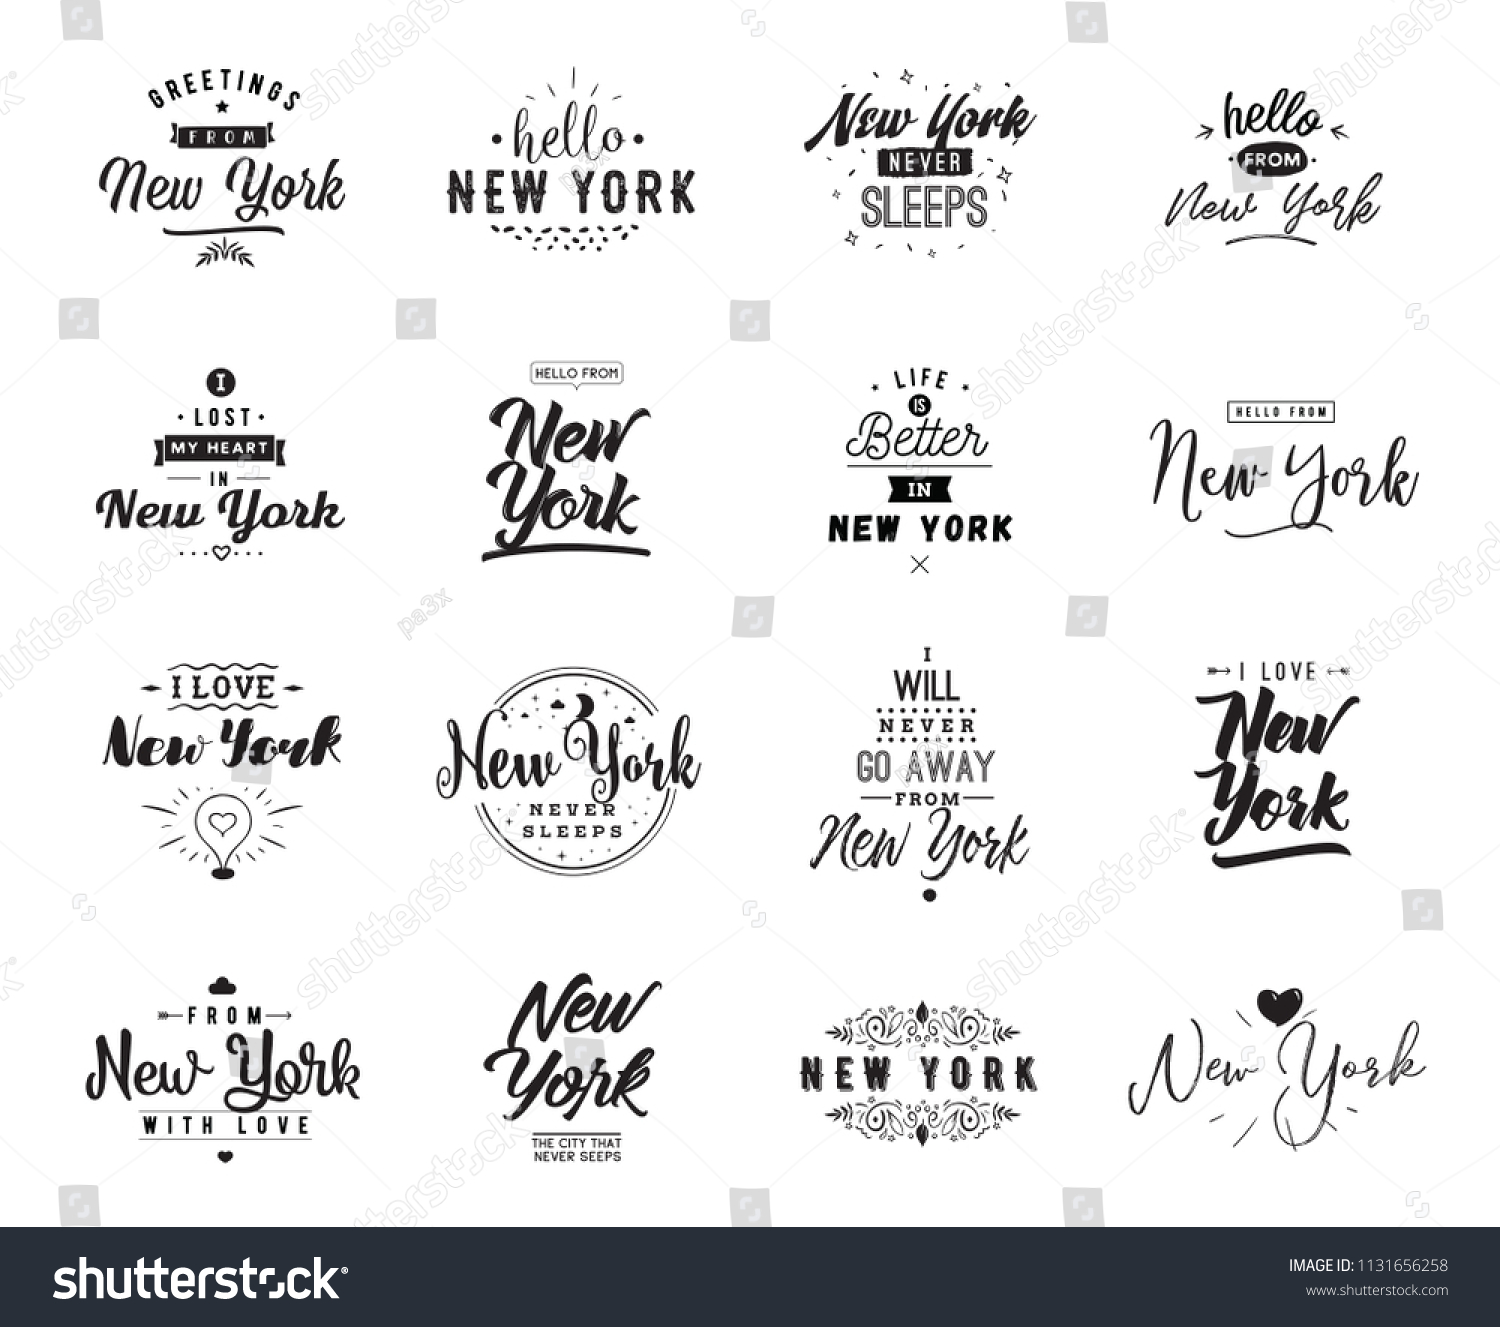 New York Greeting Cards Vector Design Stock Vector 1131656258